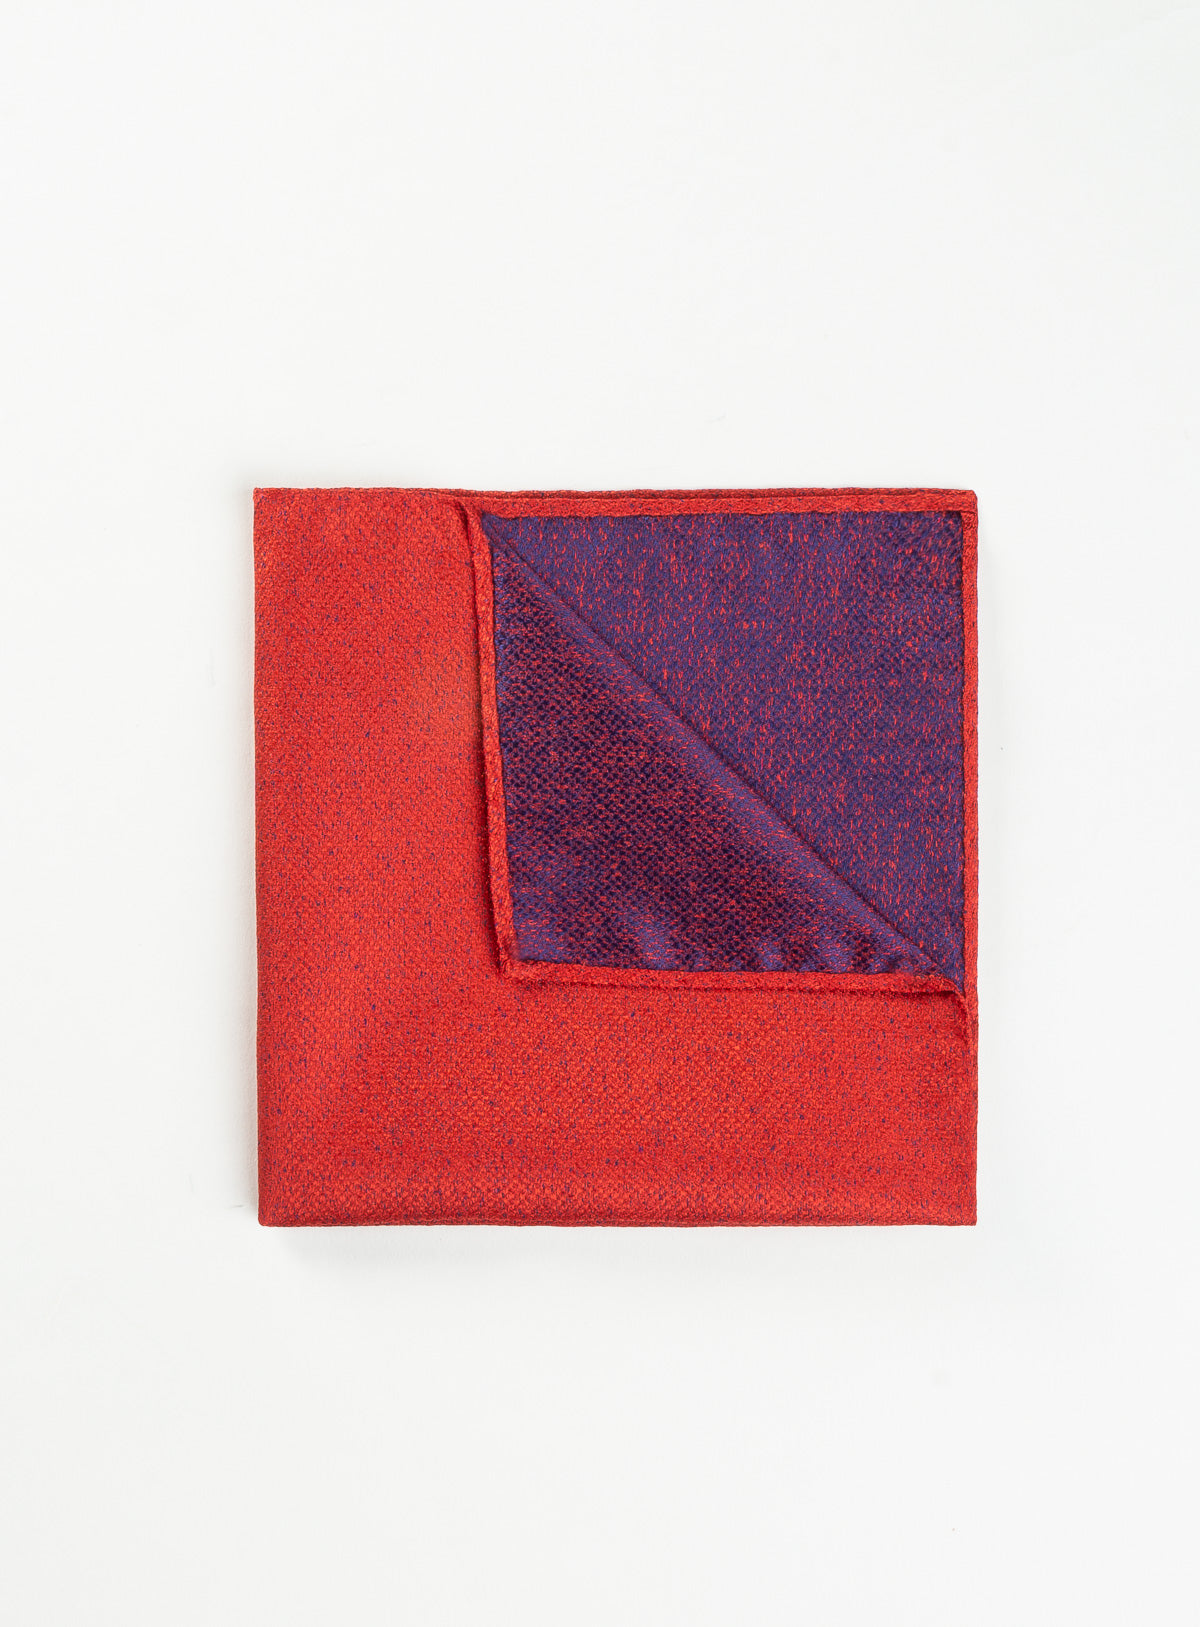 neat red pocket square - anthony of london -red